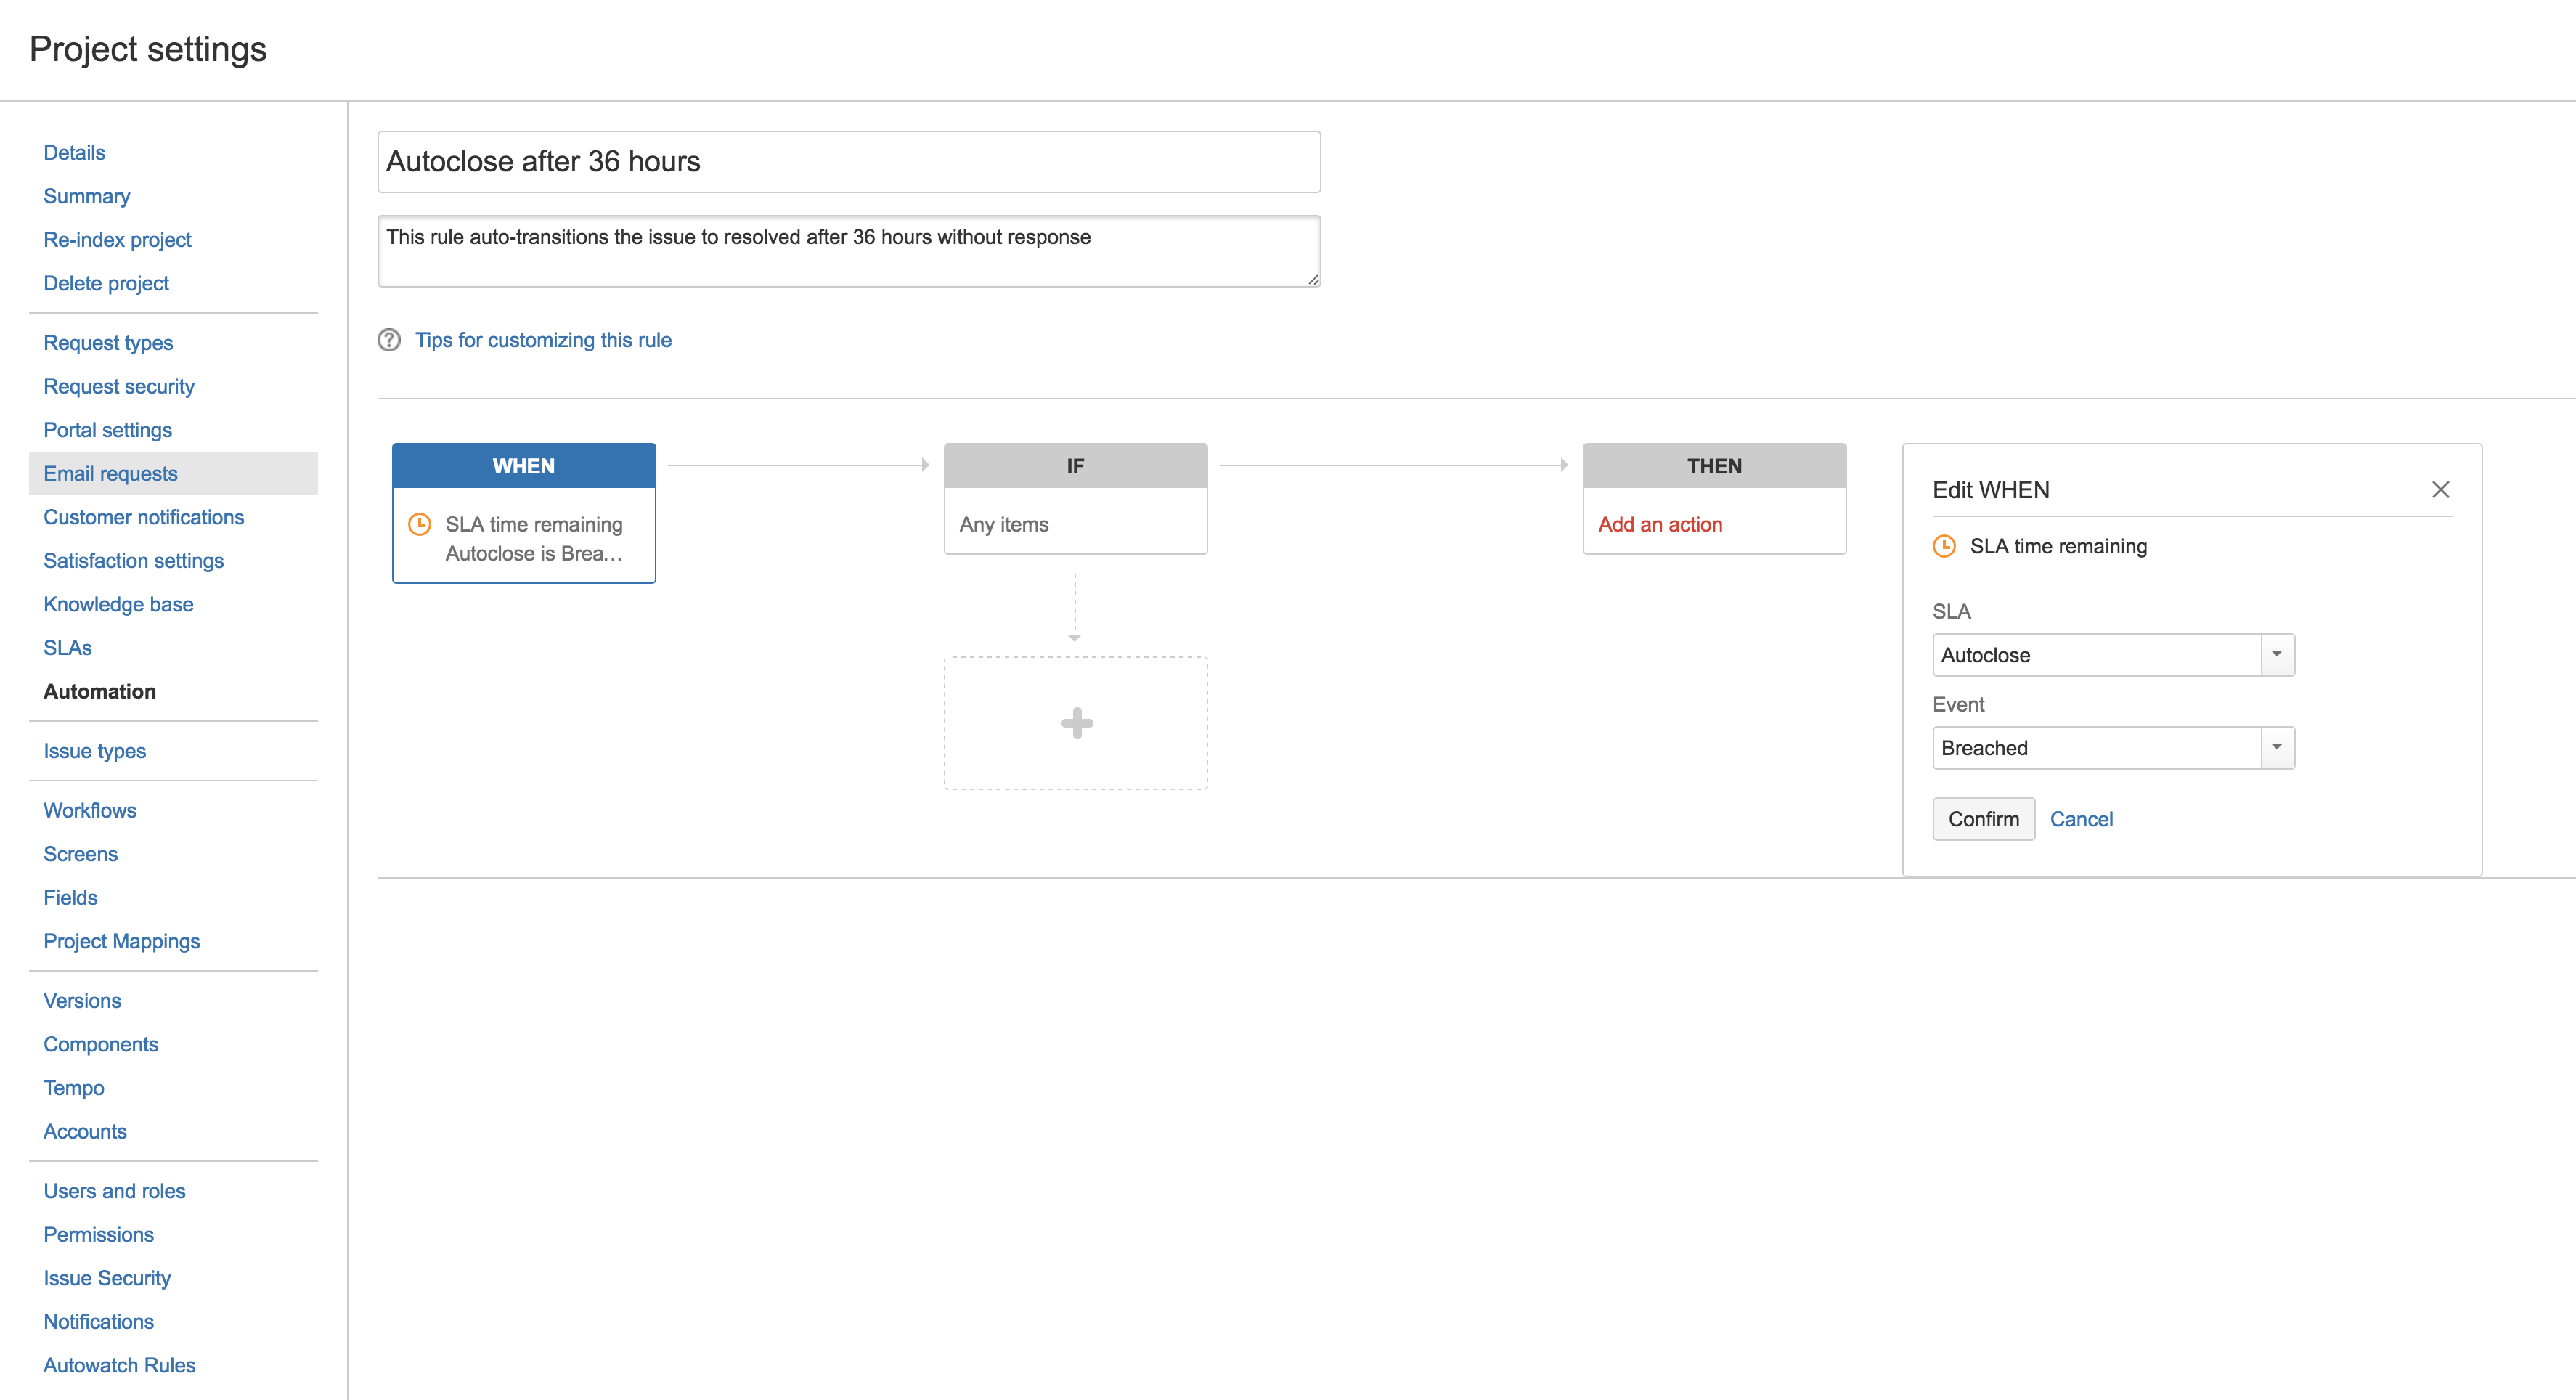 How To Use Automation Rules In Jira Service Desk For Auto